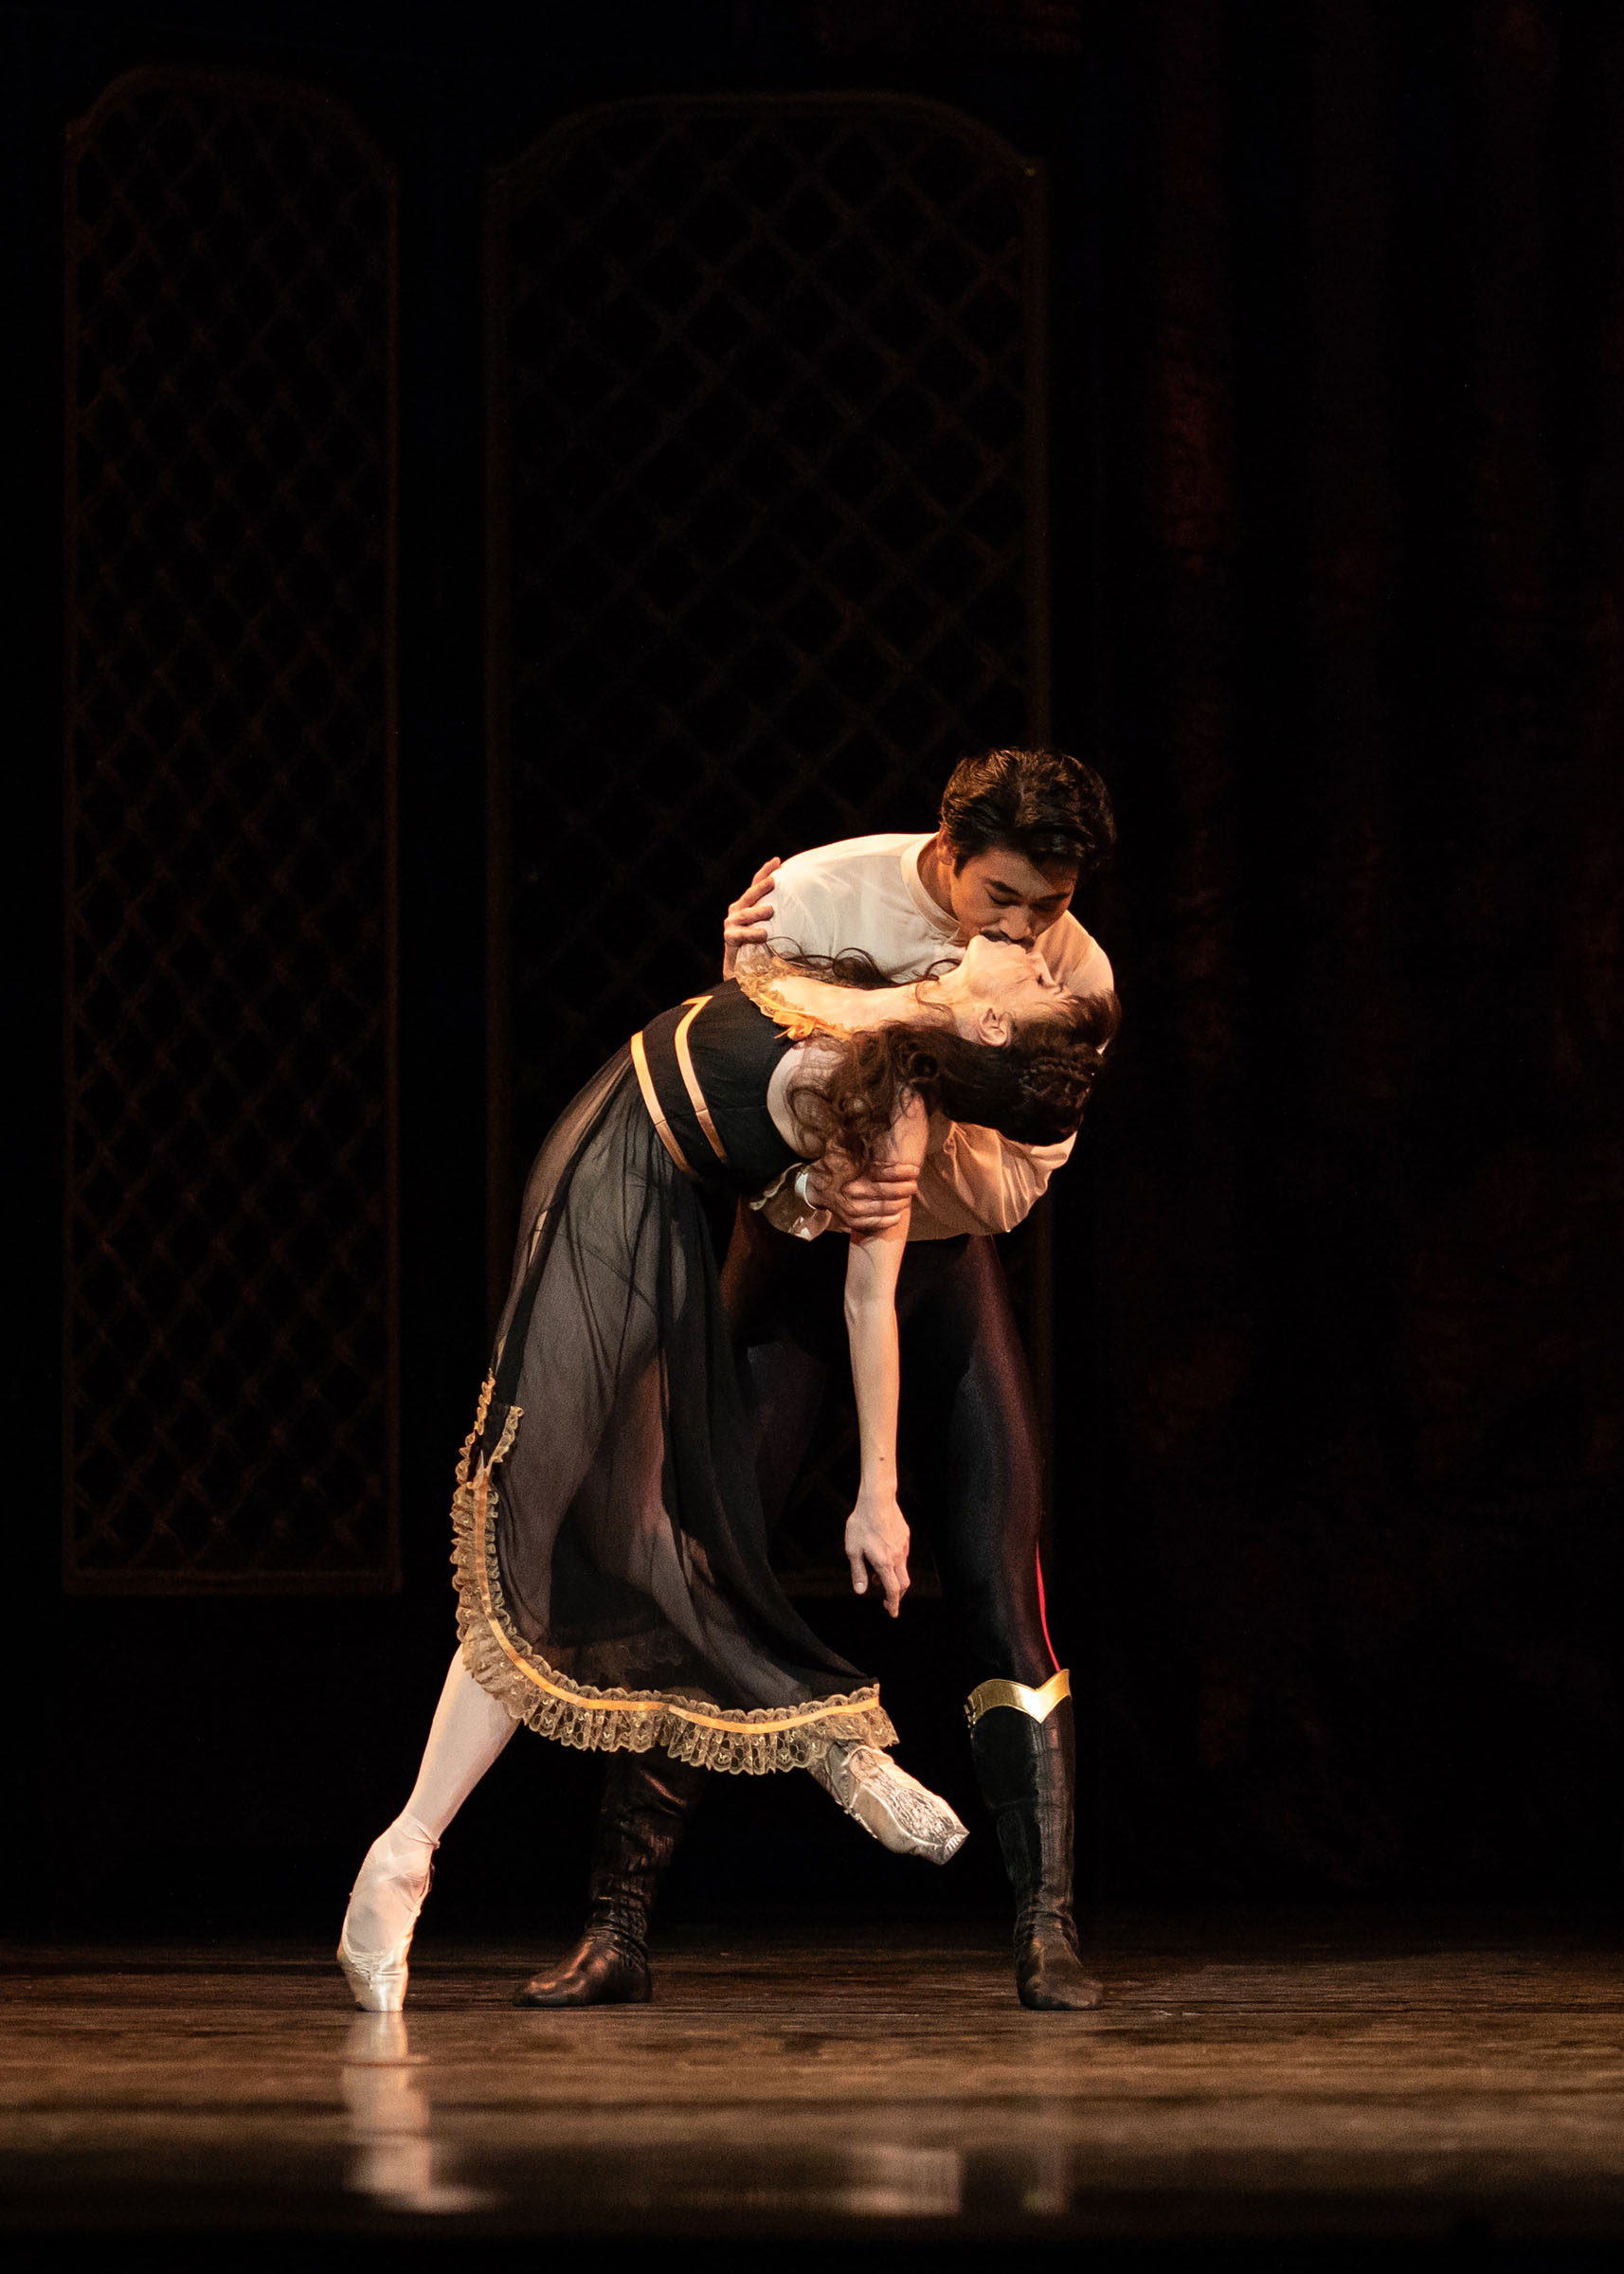 Natalia Osipova and Ryoichi Hirano kiss in Mayerling at the Royal Opera House